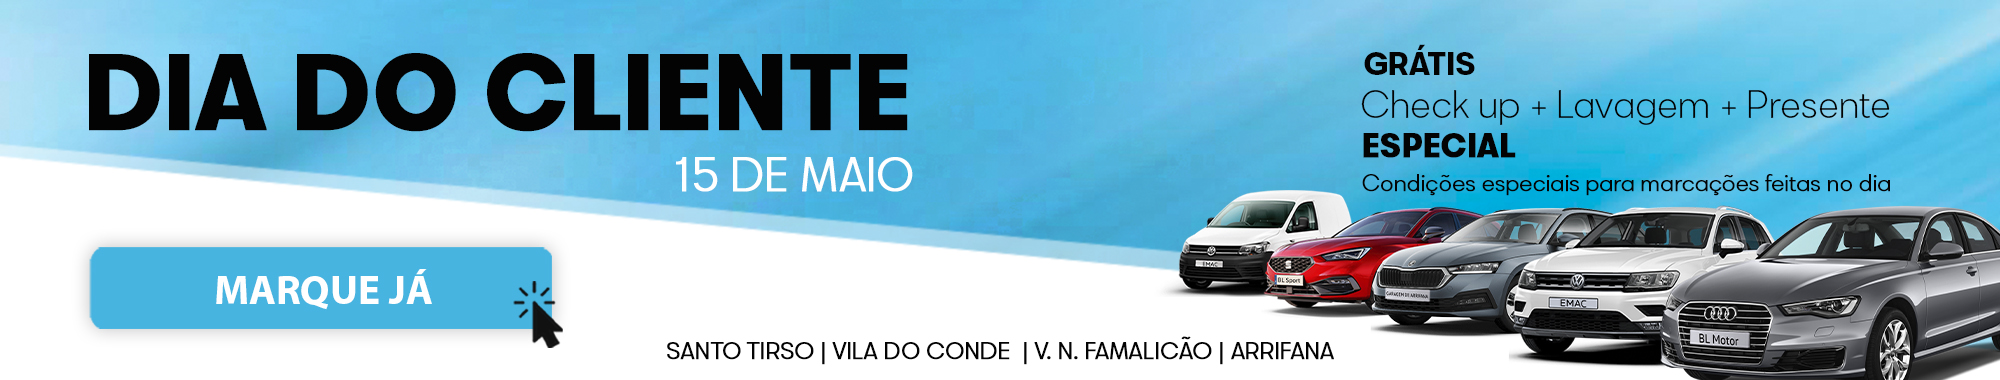 https:https://autosolucoes.pt/dia-do-cliente/